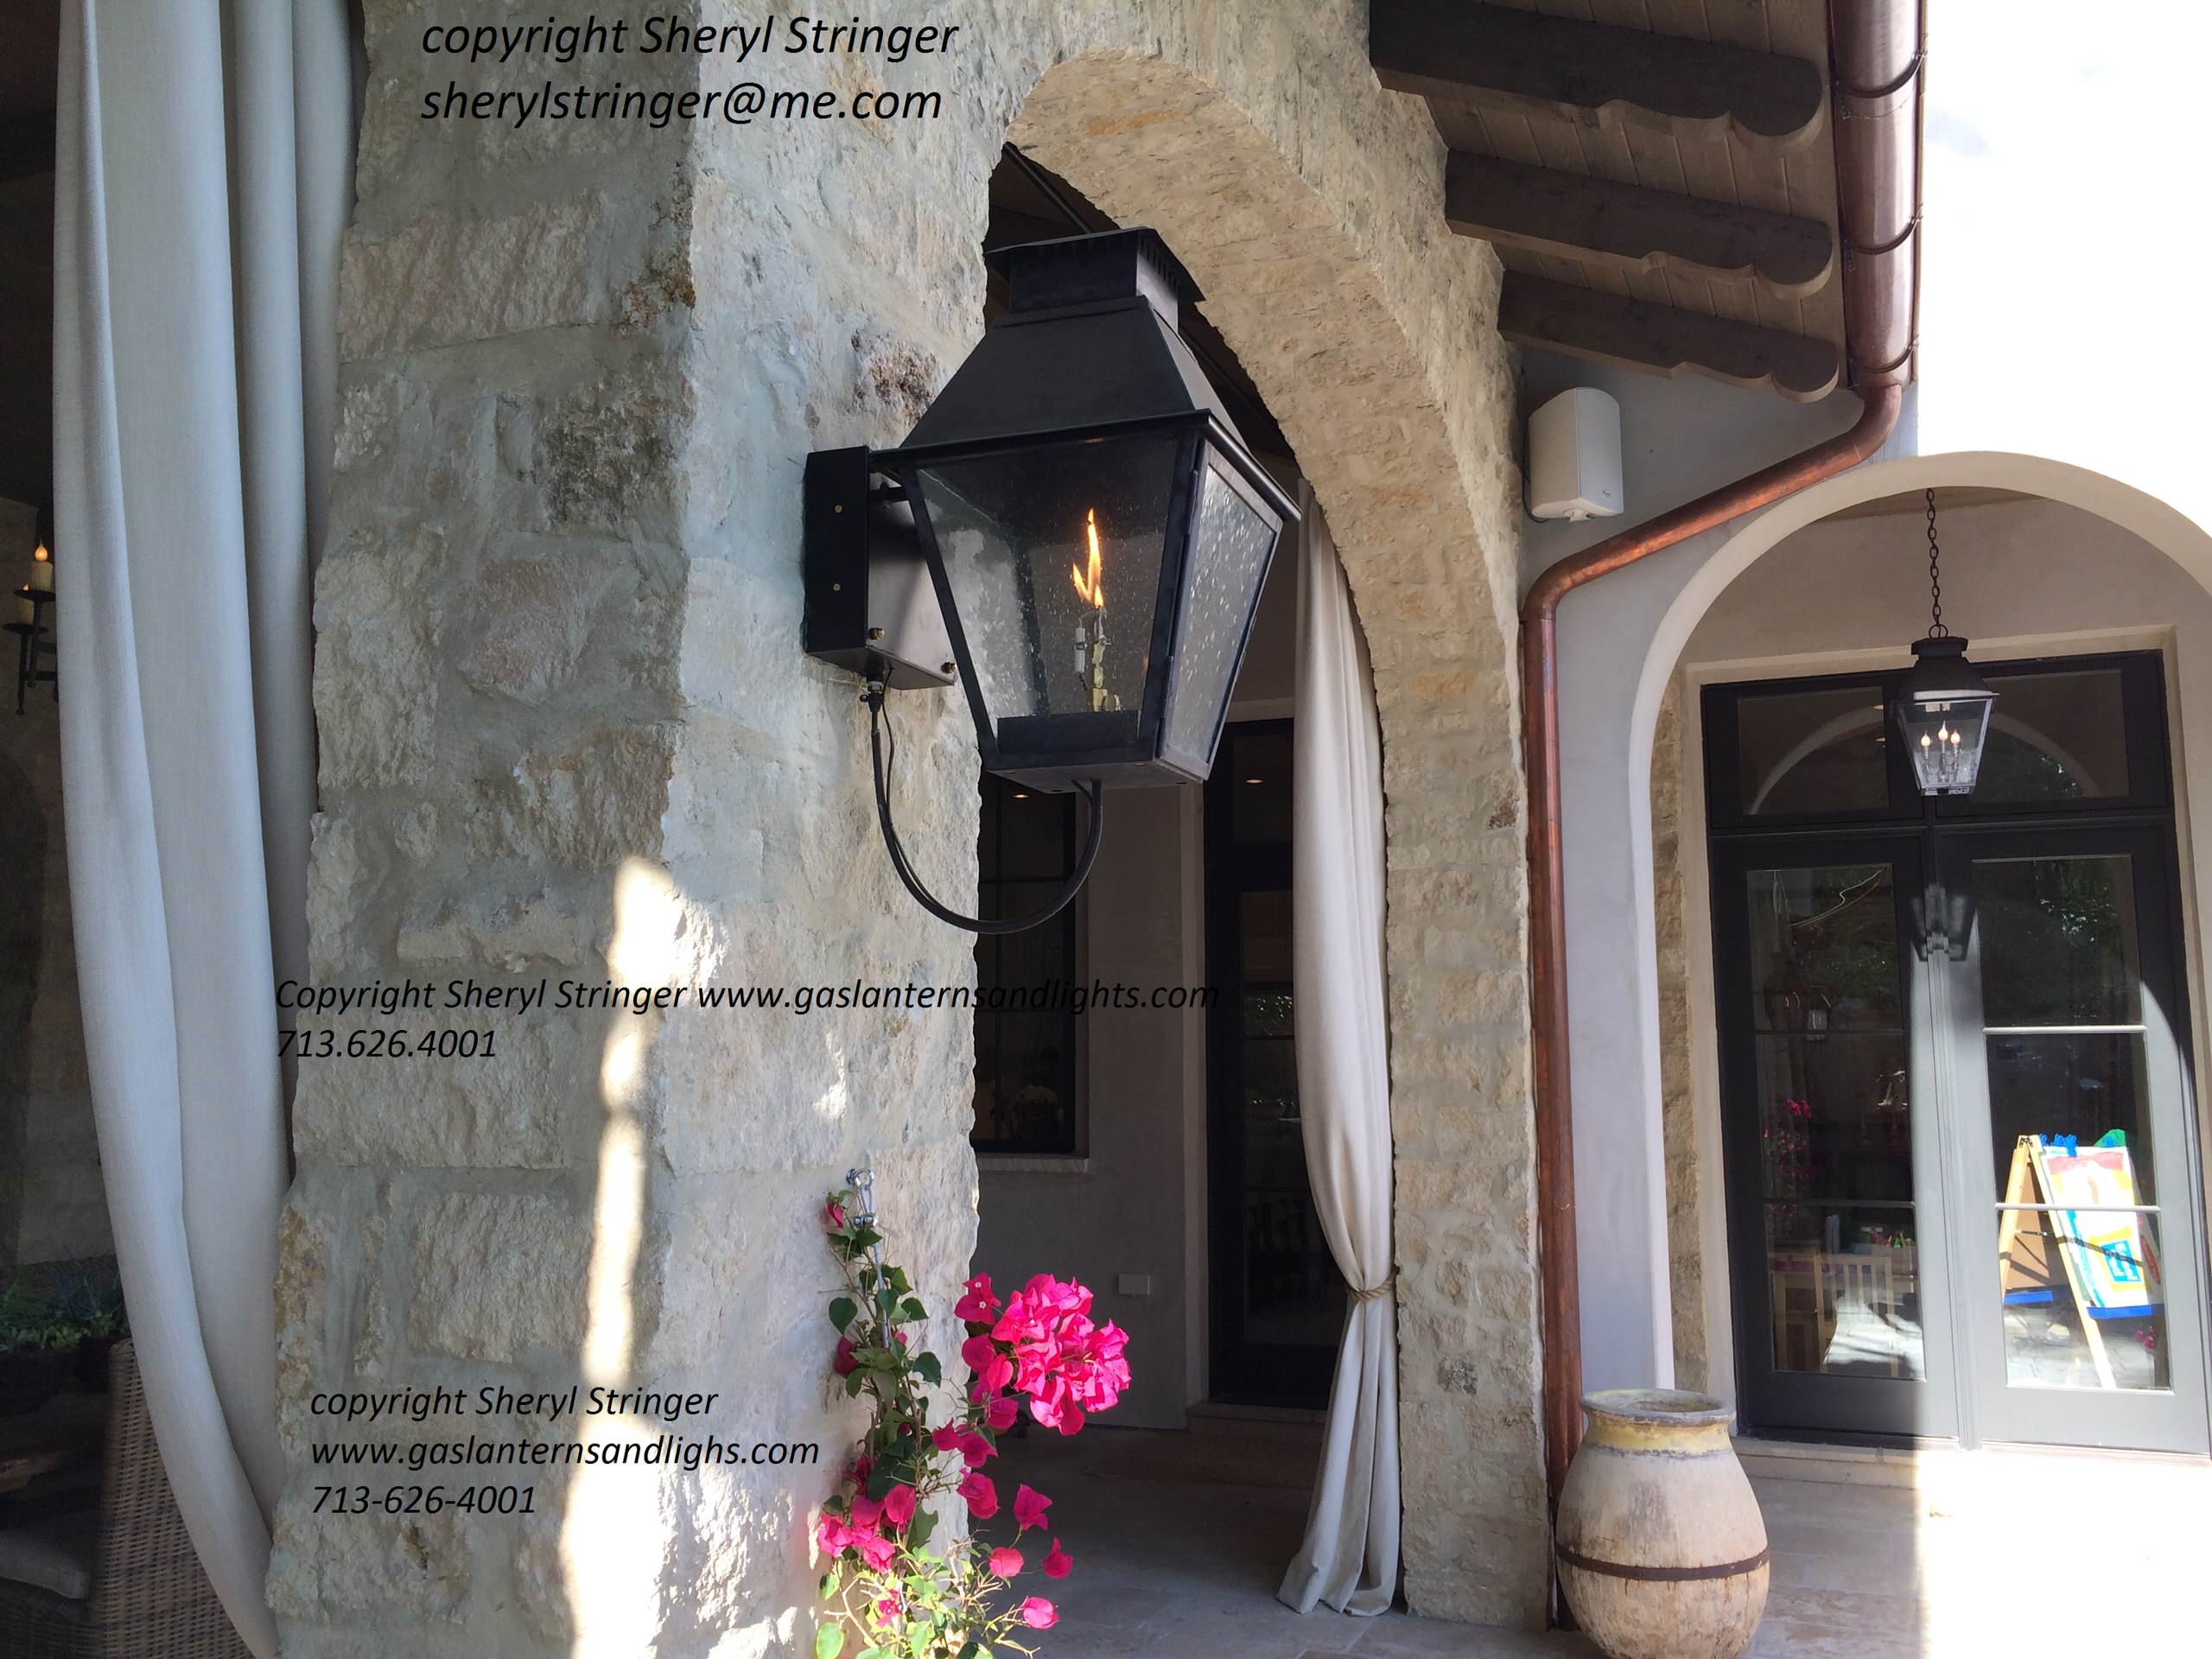 V Style Gas lantern on wall and Hanging V Electric Lantern